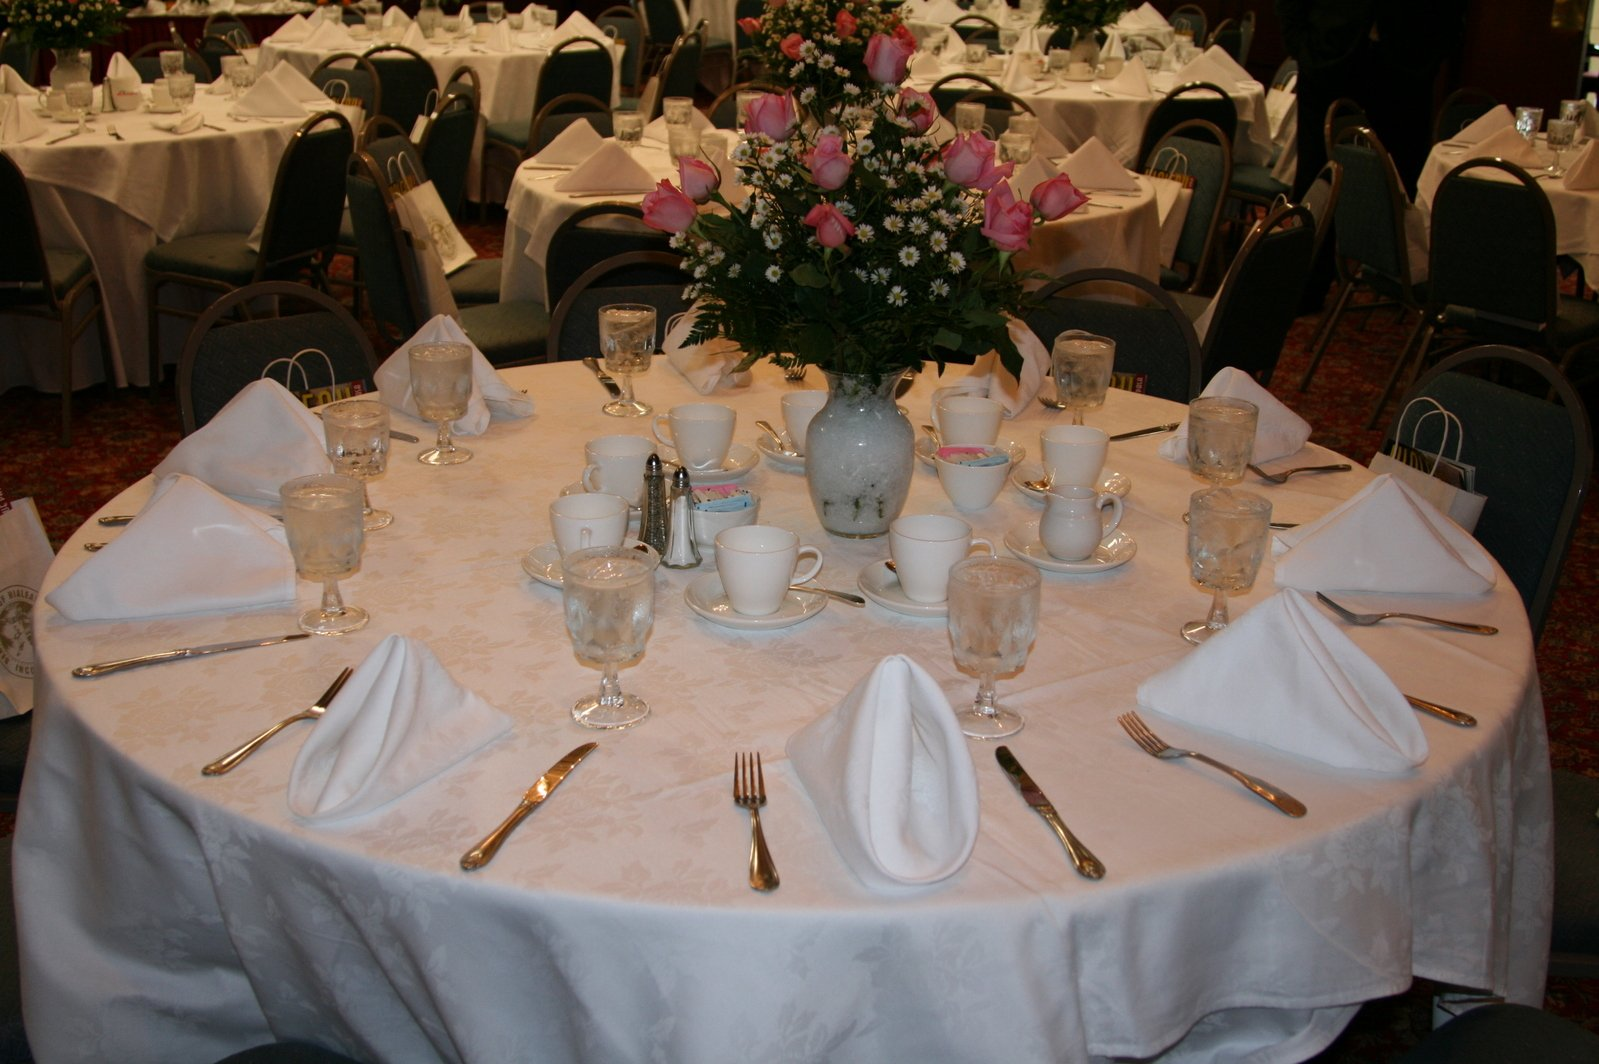 Free Banquet 4 Stock Photo Freeimages Com